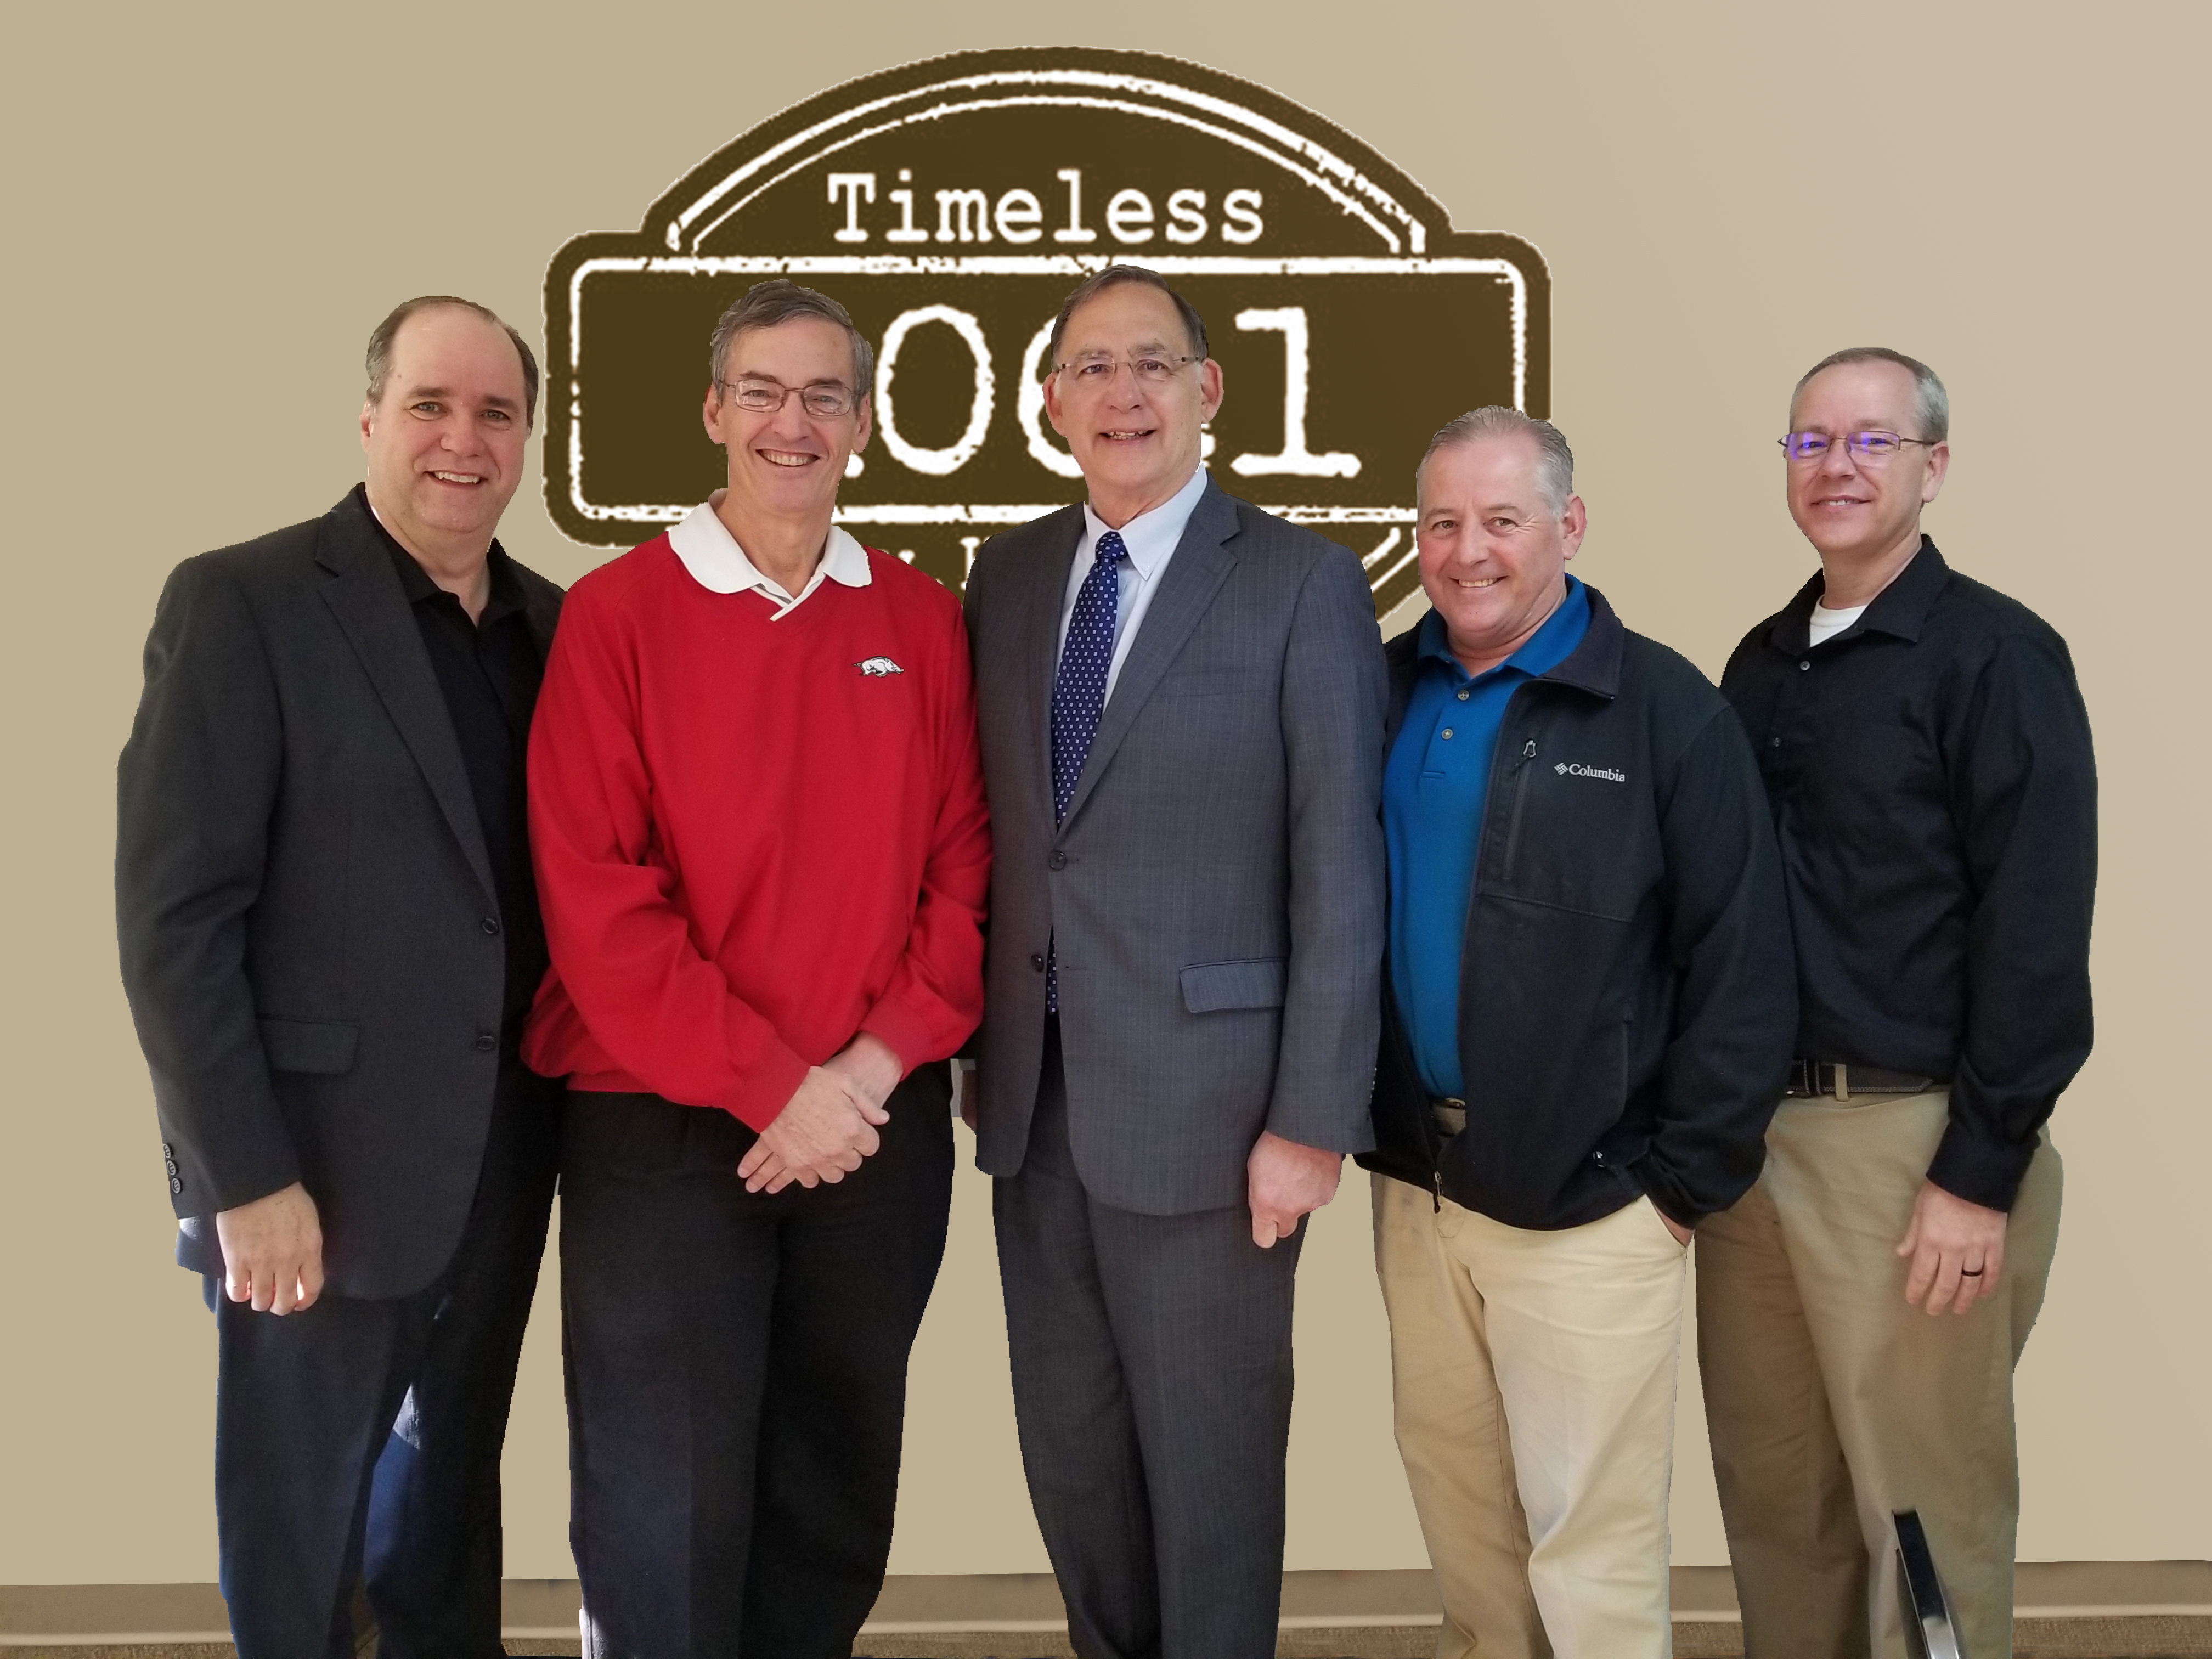 KFFB's Bob Connell Mayor Paul Wellenberger Senator Boozman Mayor Richard McCormac Judge Dale James